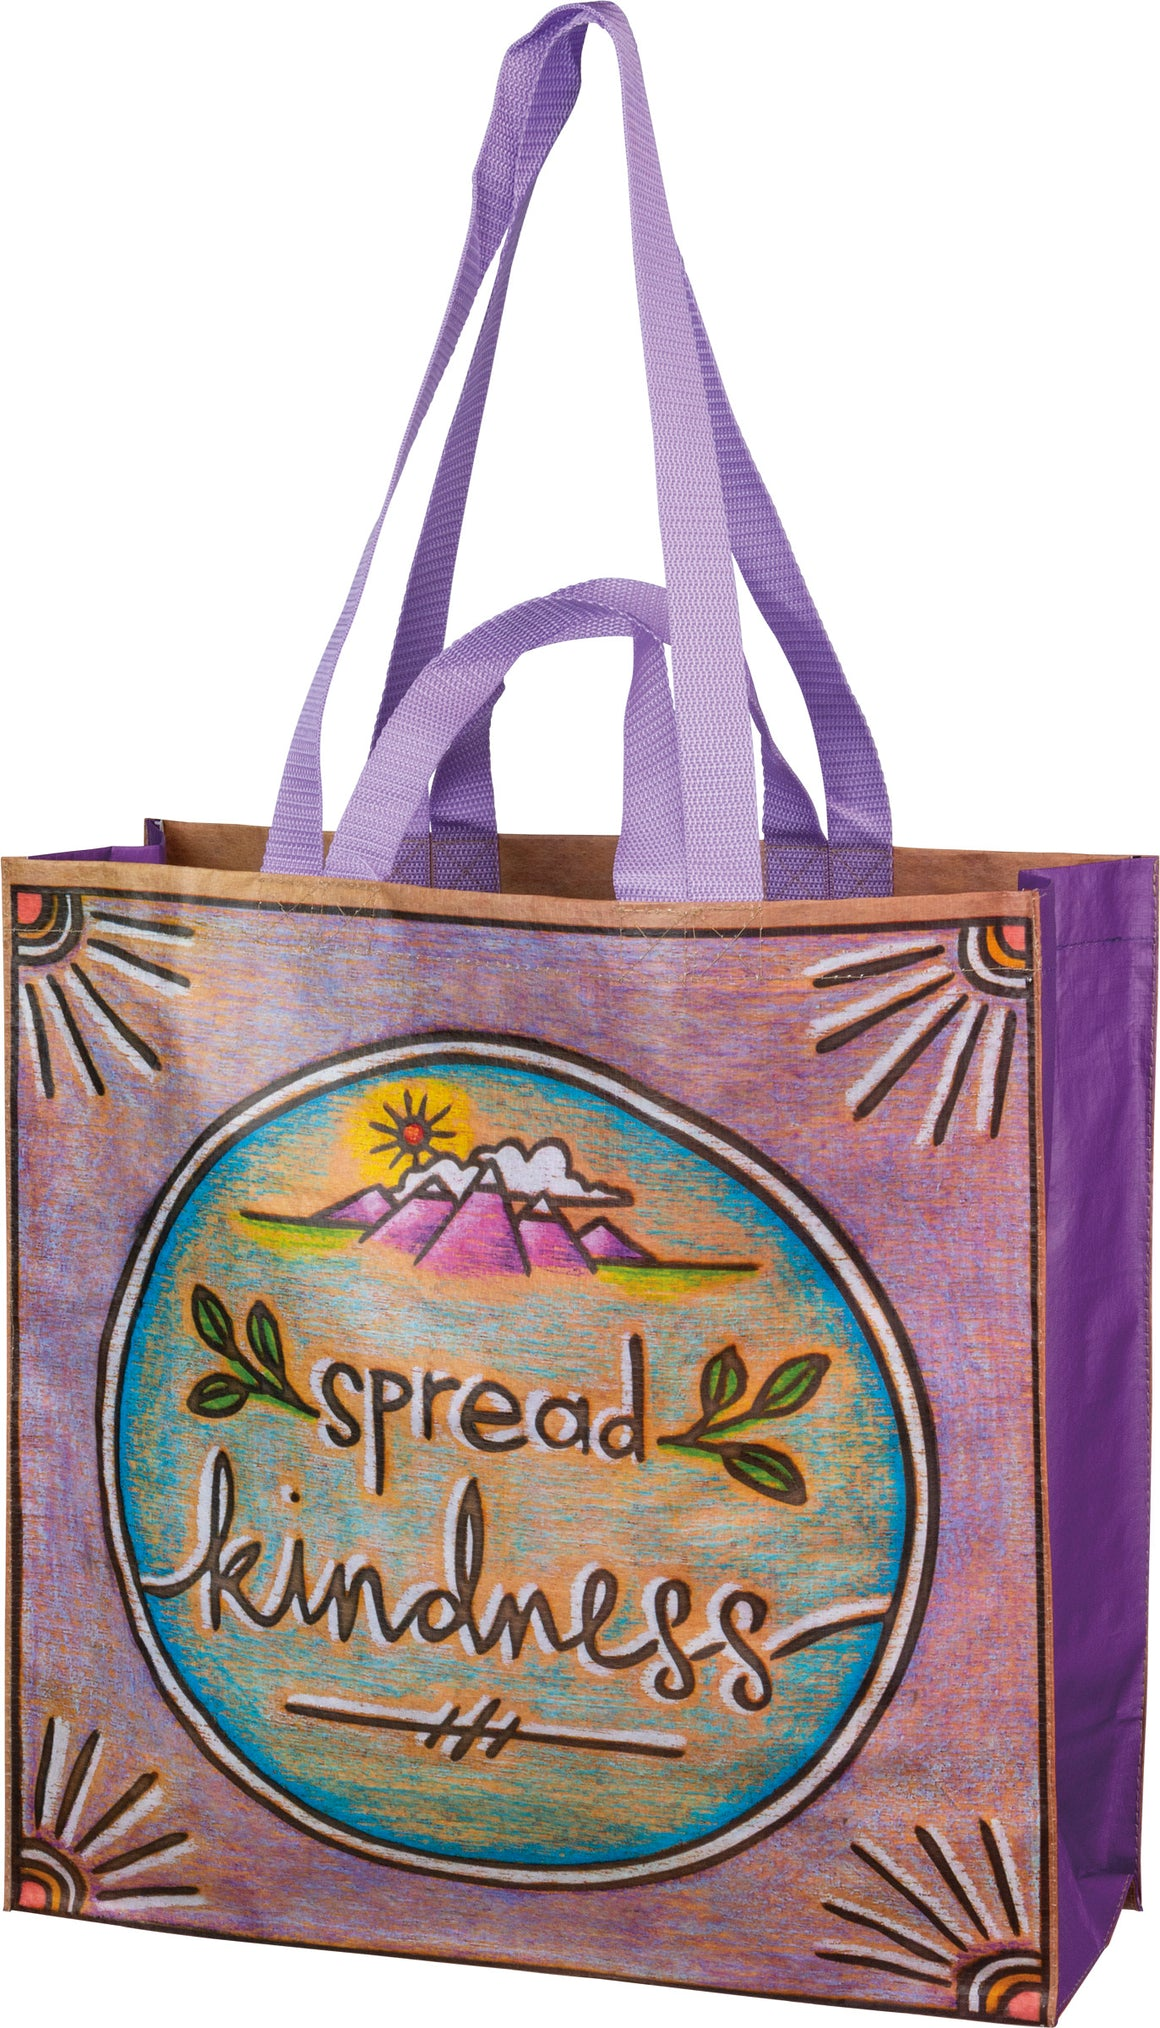 Spread Kindness Market Tote